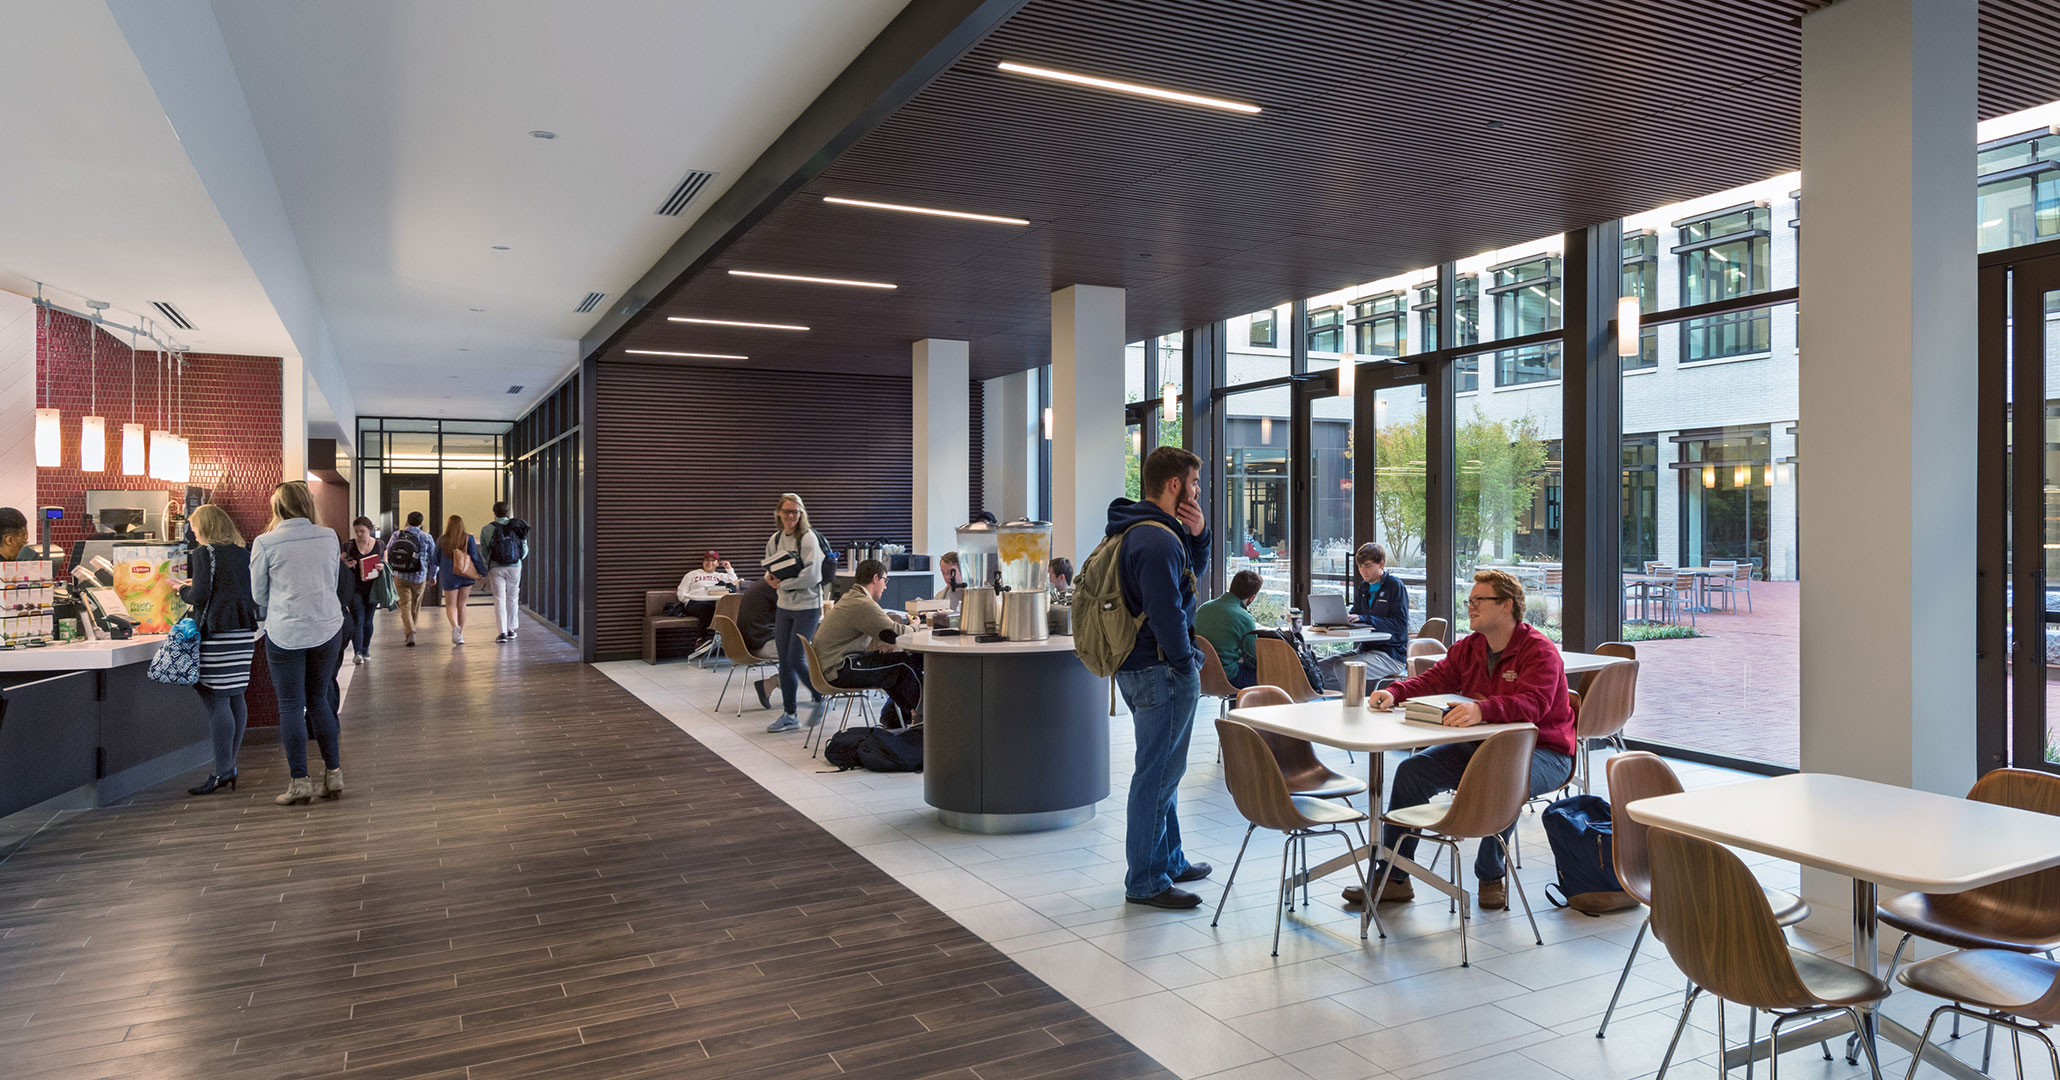 The University of South Carolina worked with Boudreaux architects to design the café space at the new Law School.